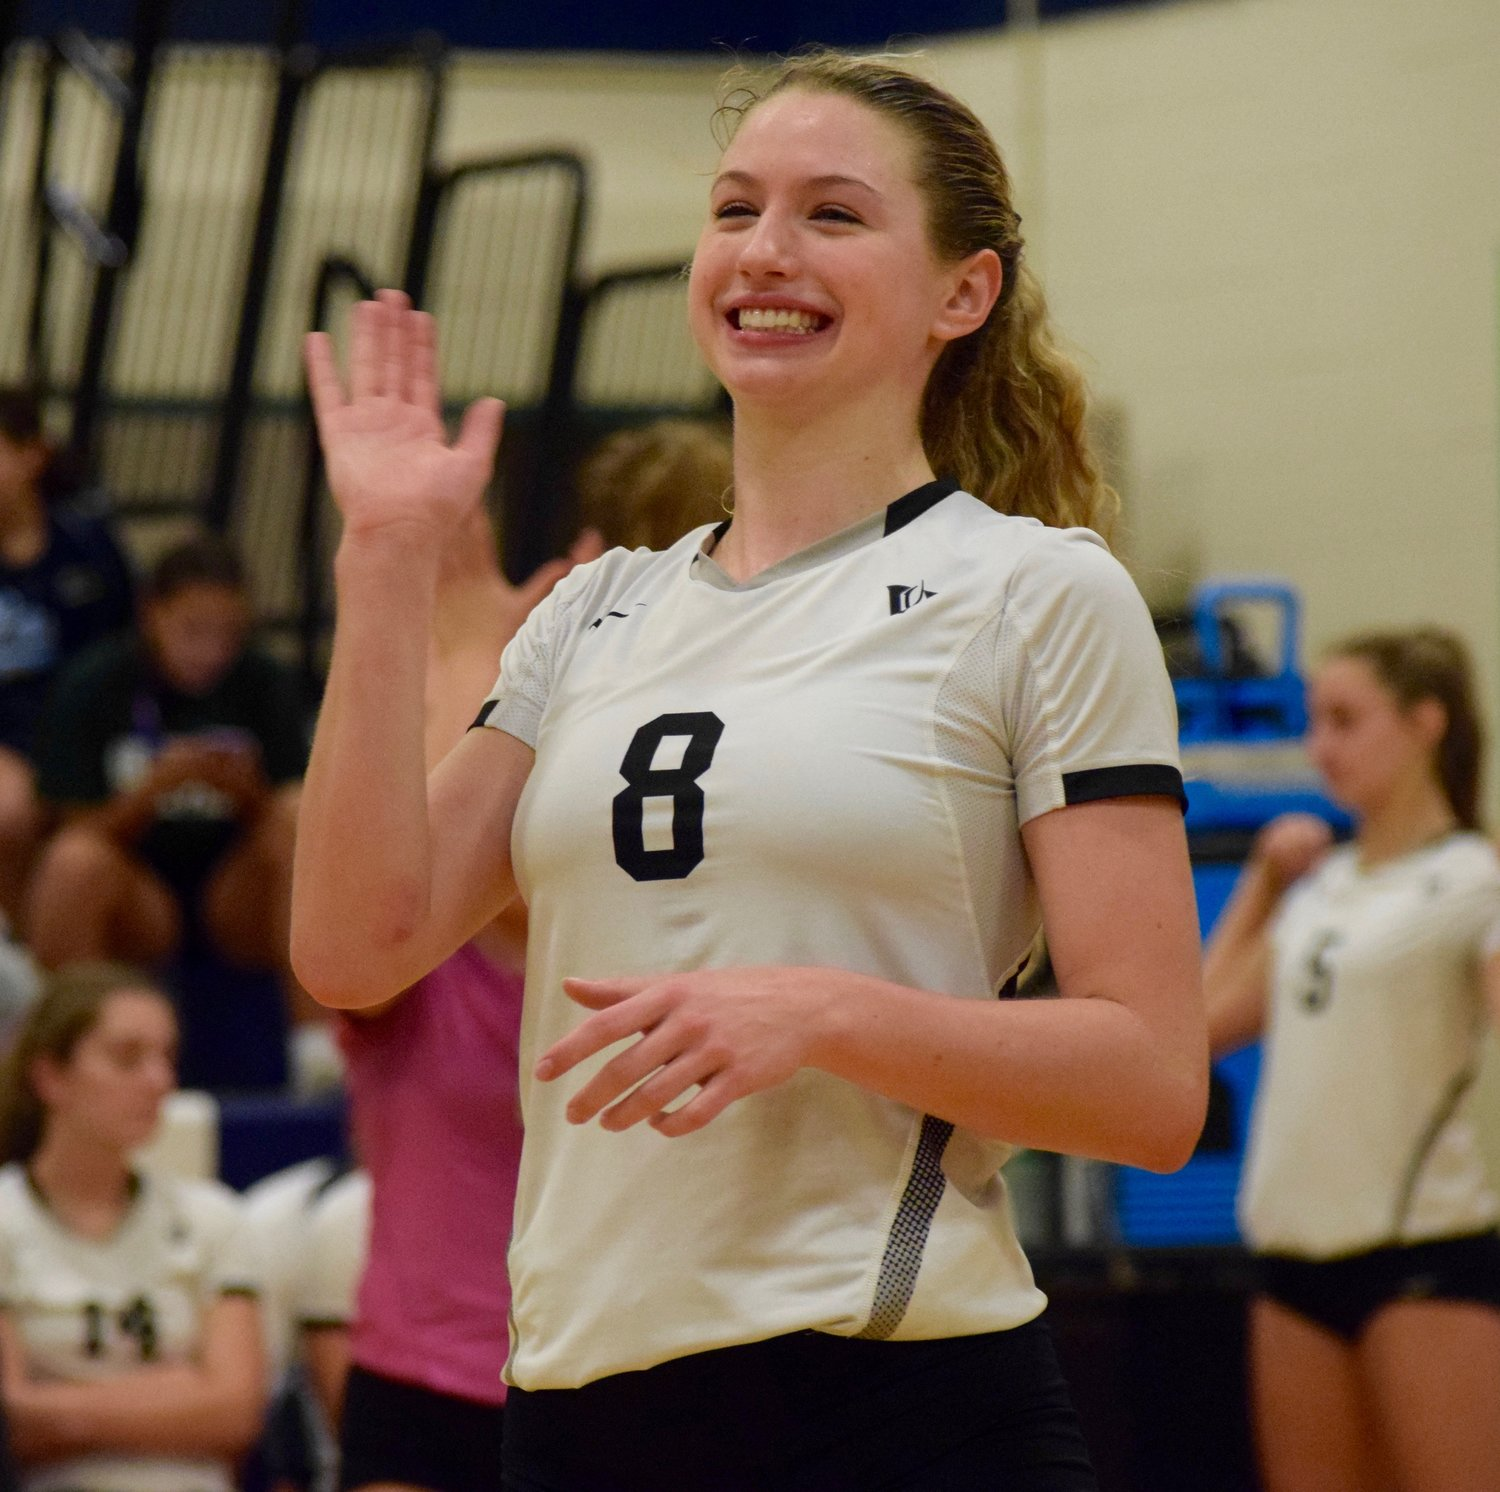 Senior Delaney Dilfer has 382 assists and is second with 18 blocks for Vandegrift this season, which won its first eight games in a row to start the year.